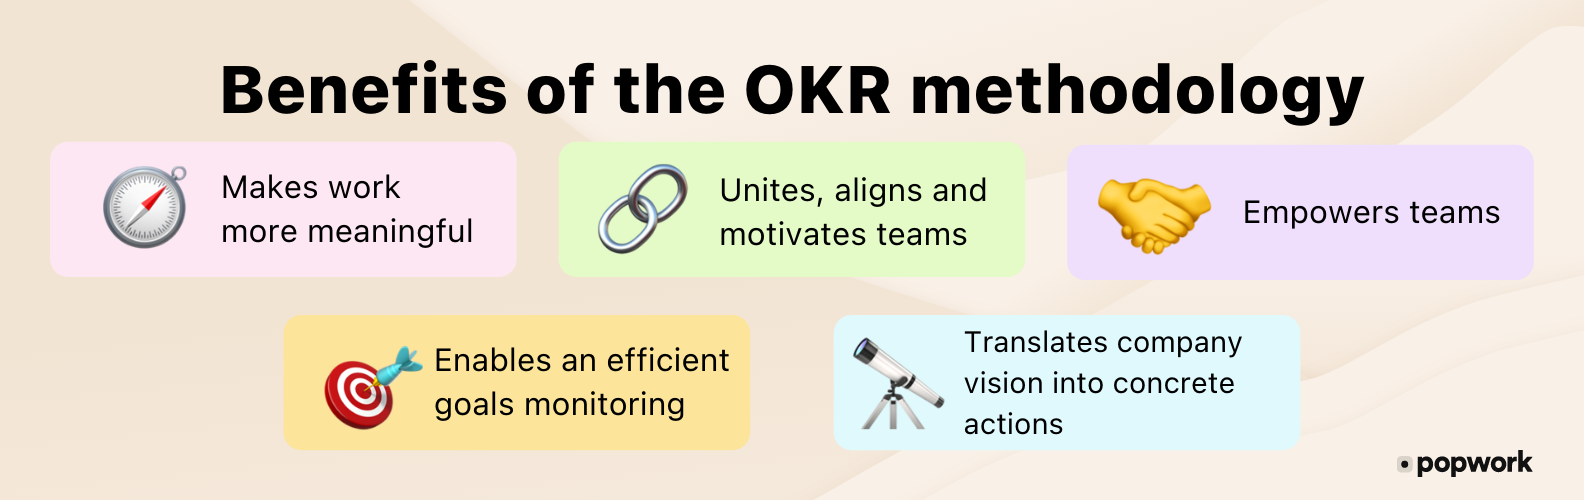 5 Benefits of the OKR methodology infography: makes work more meaningful, unites, aligns and motivates teams, empowers teams, enables an efficient goals monitoring, translates company vision into concrete actions - Popwork